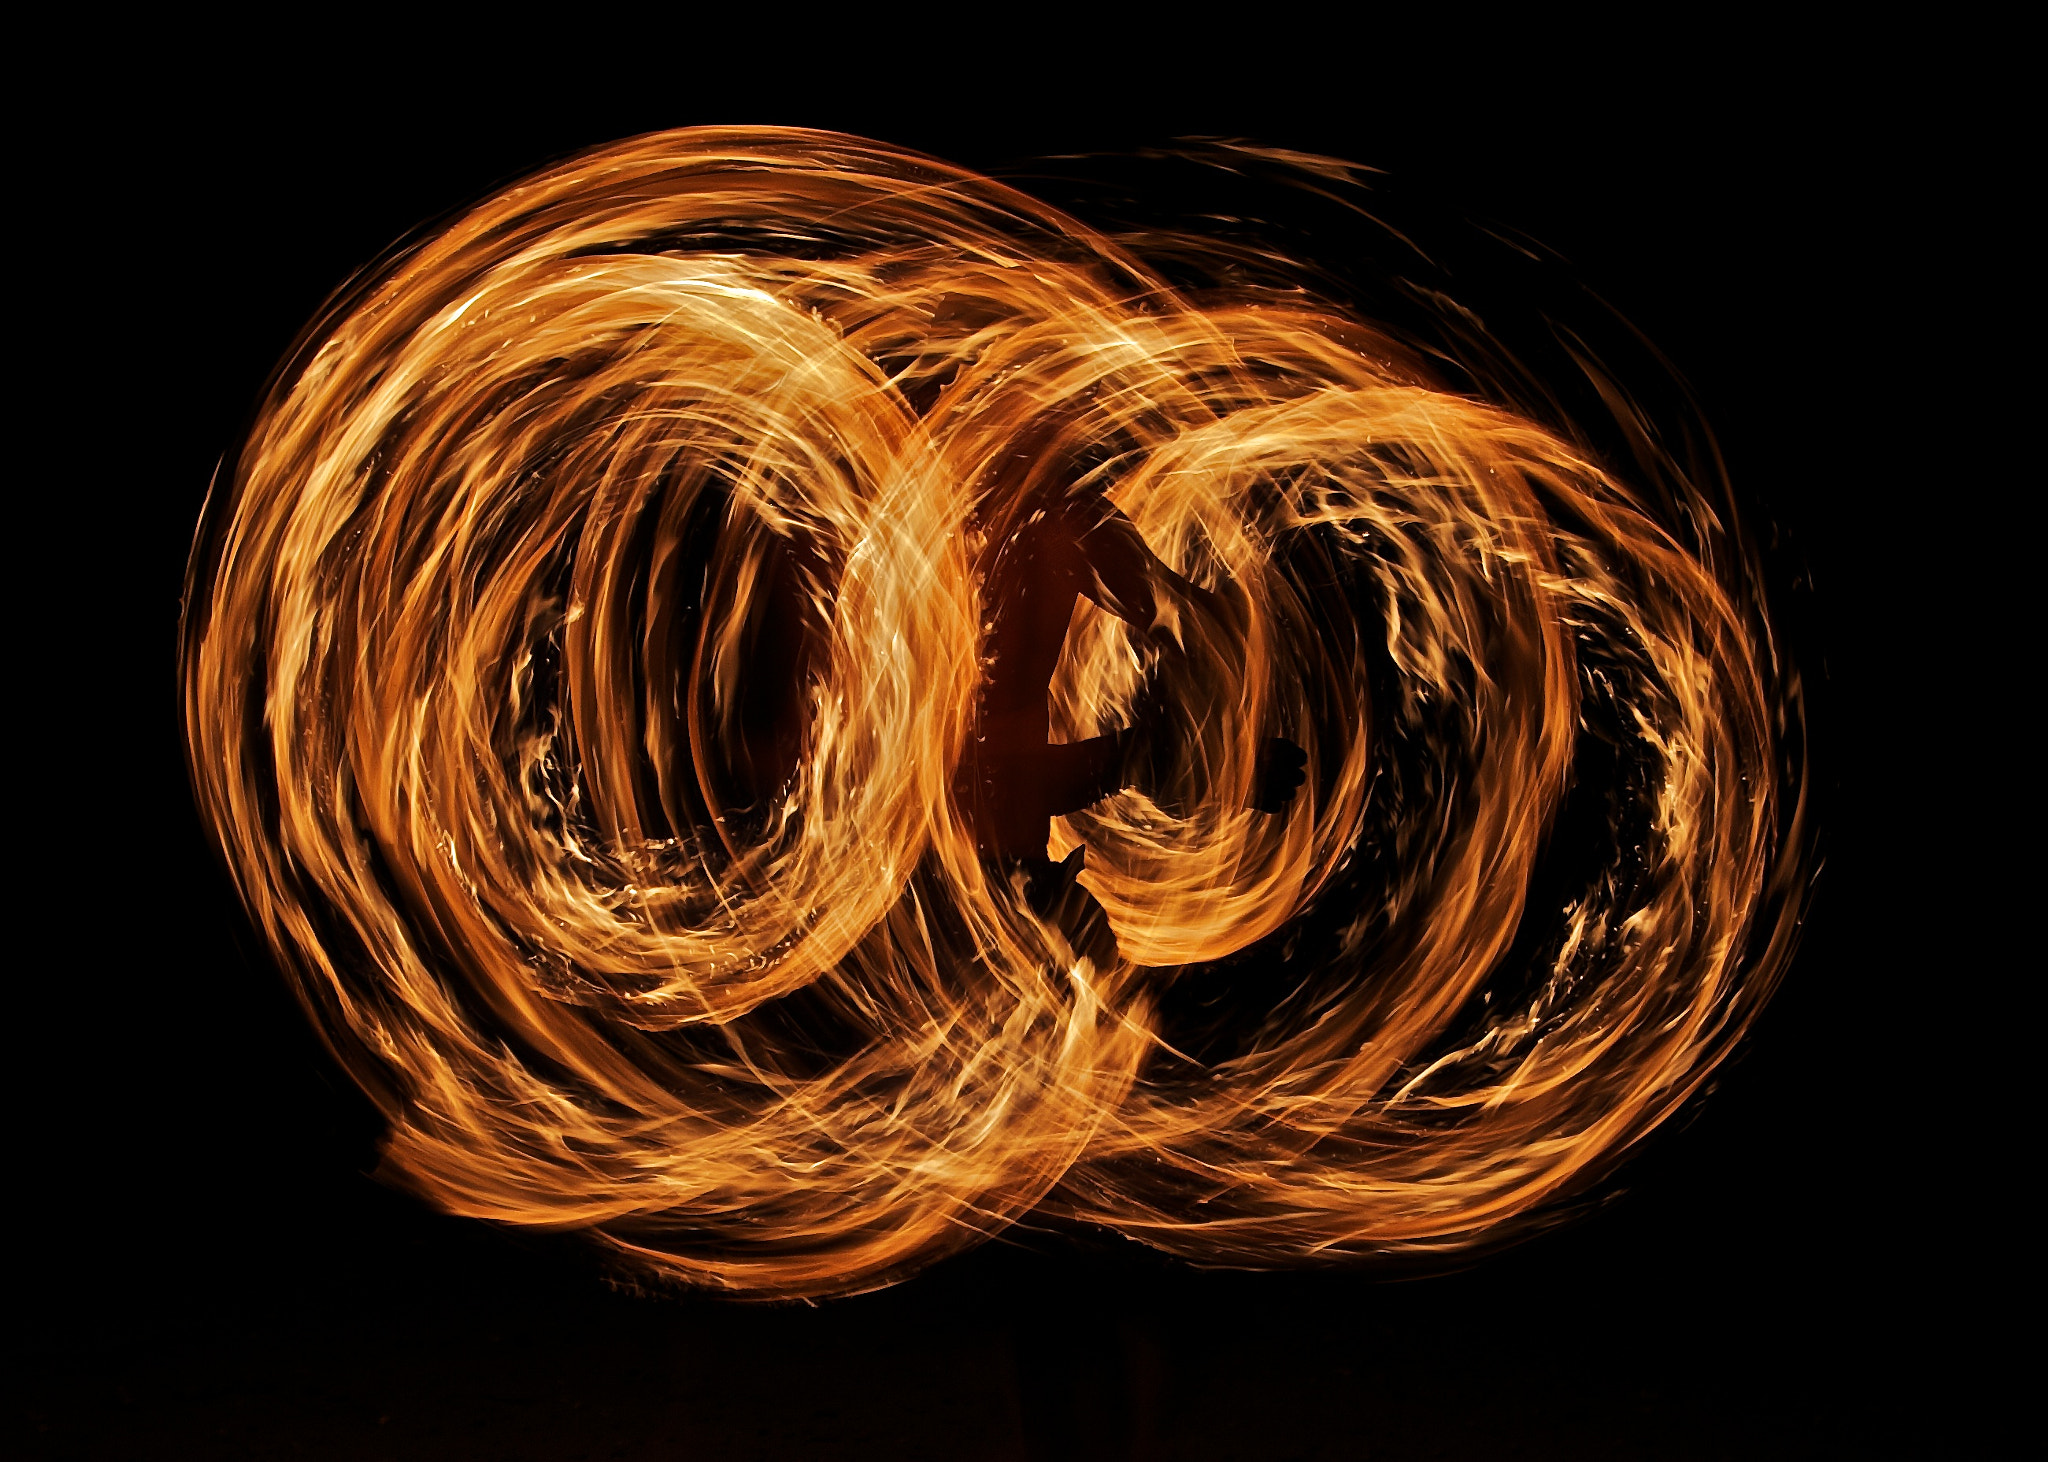 Photograph Circle of Fire by Uli Poetsch on 500px